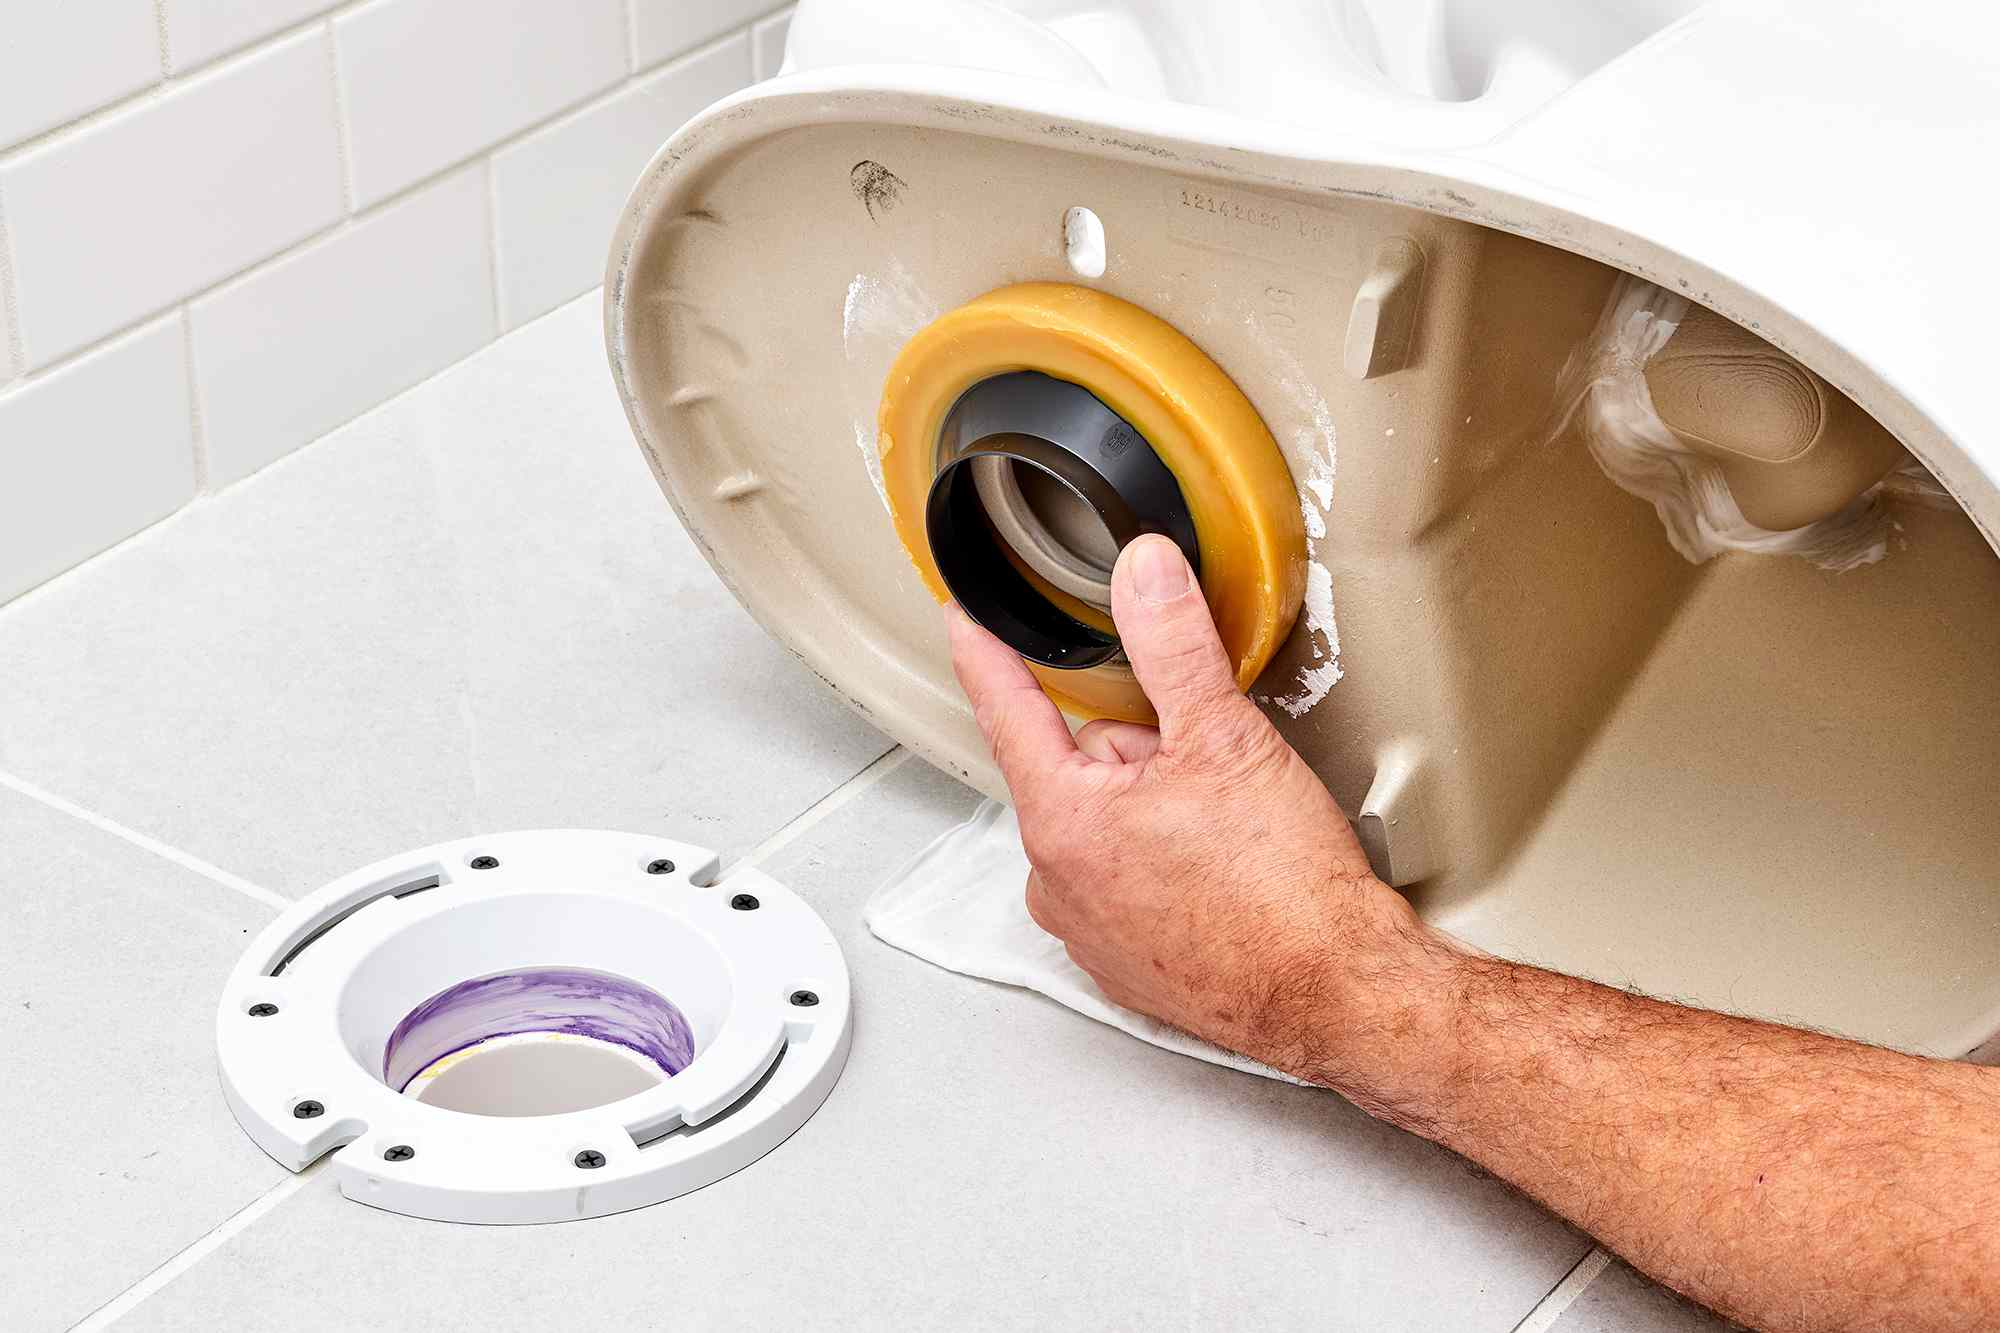 New wax ring applied to bottom of clean toilet